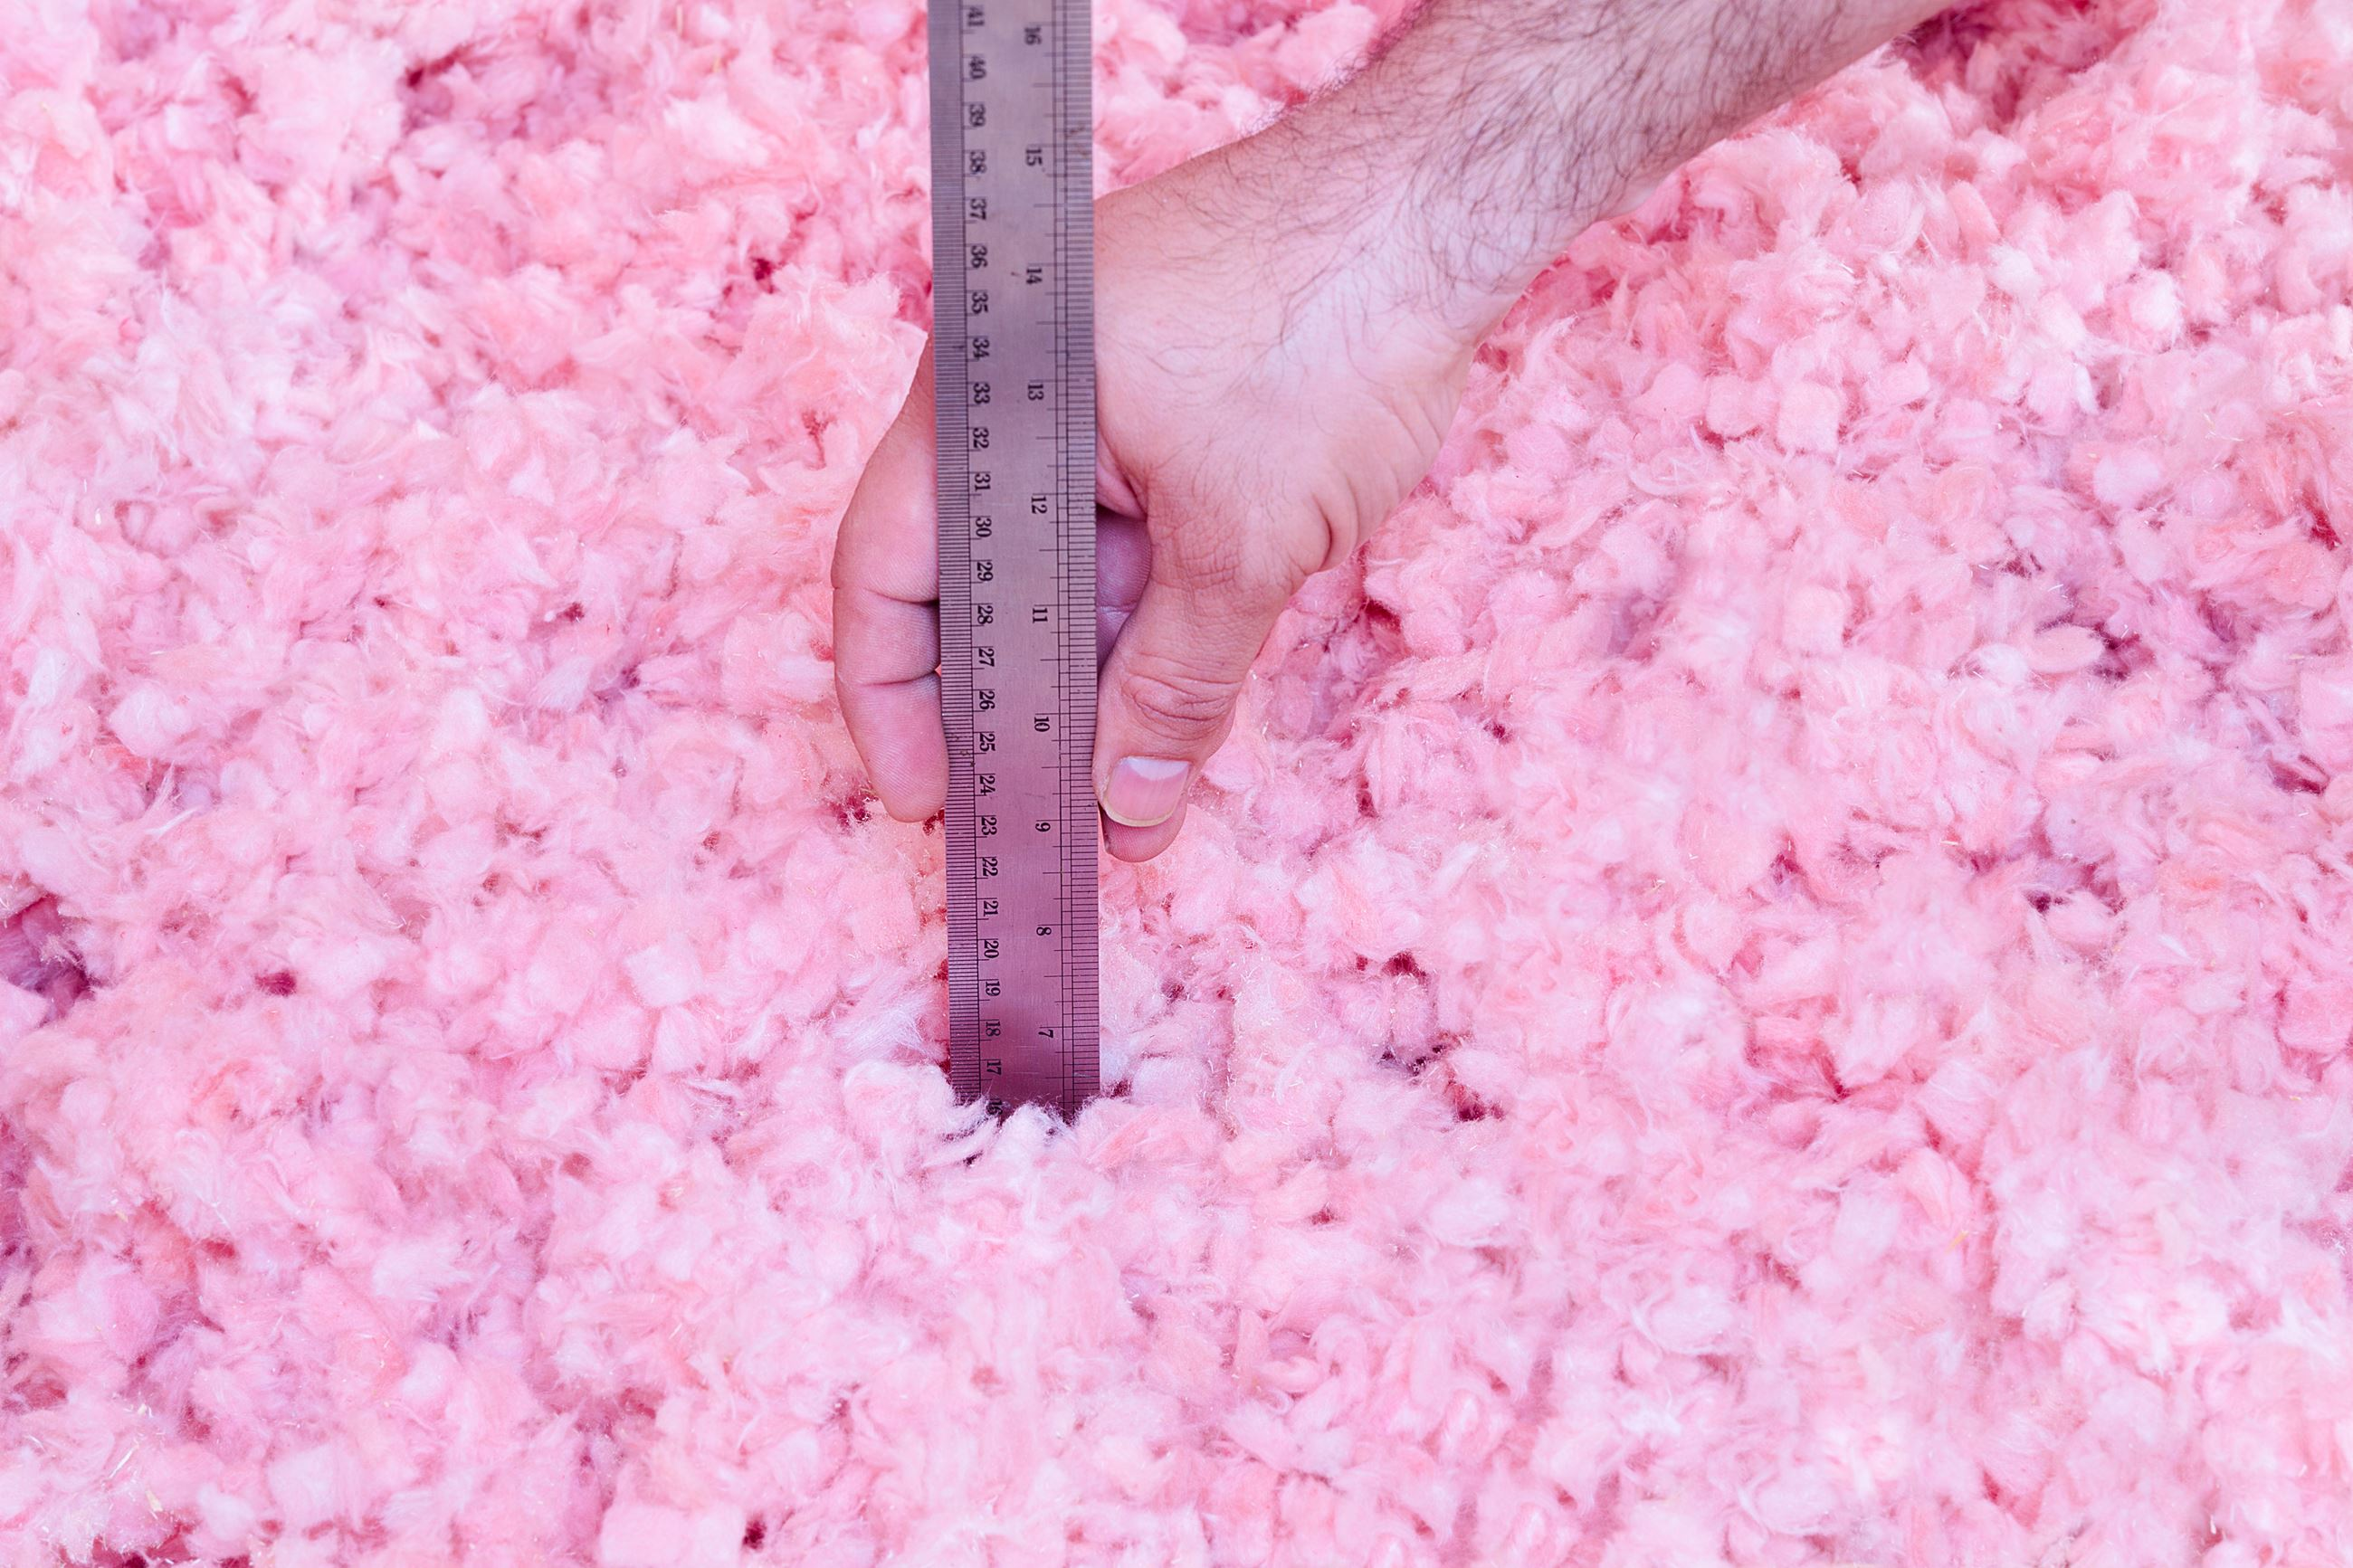 Image of a ruler demonstrating the height of the insulation in the home's attic